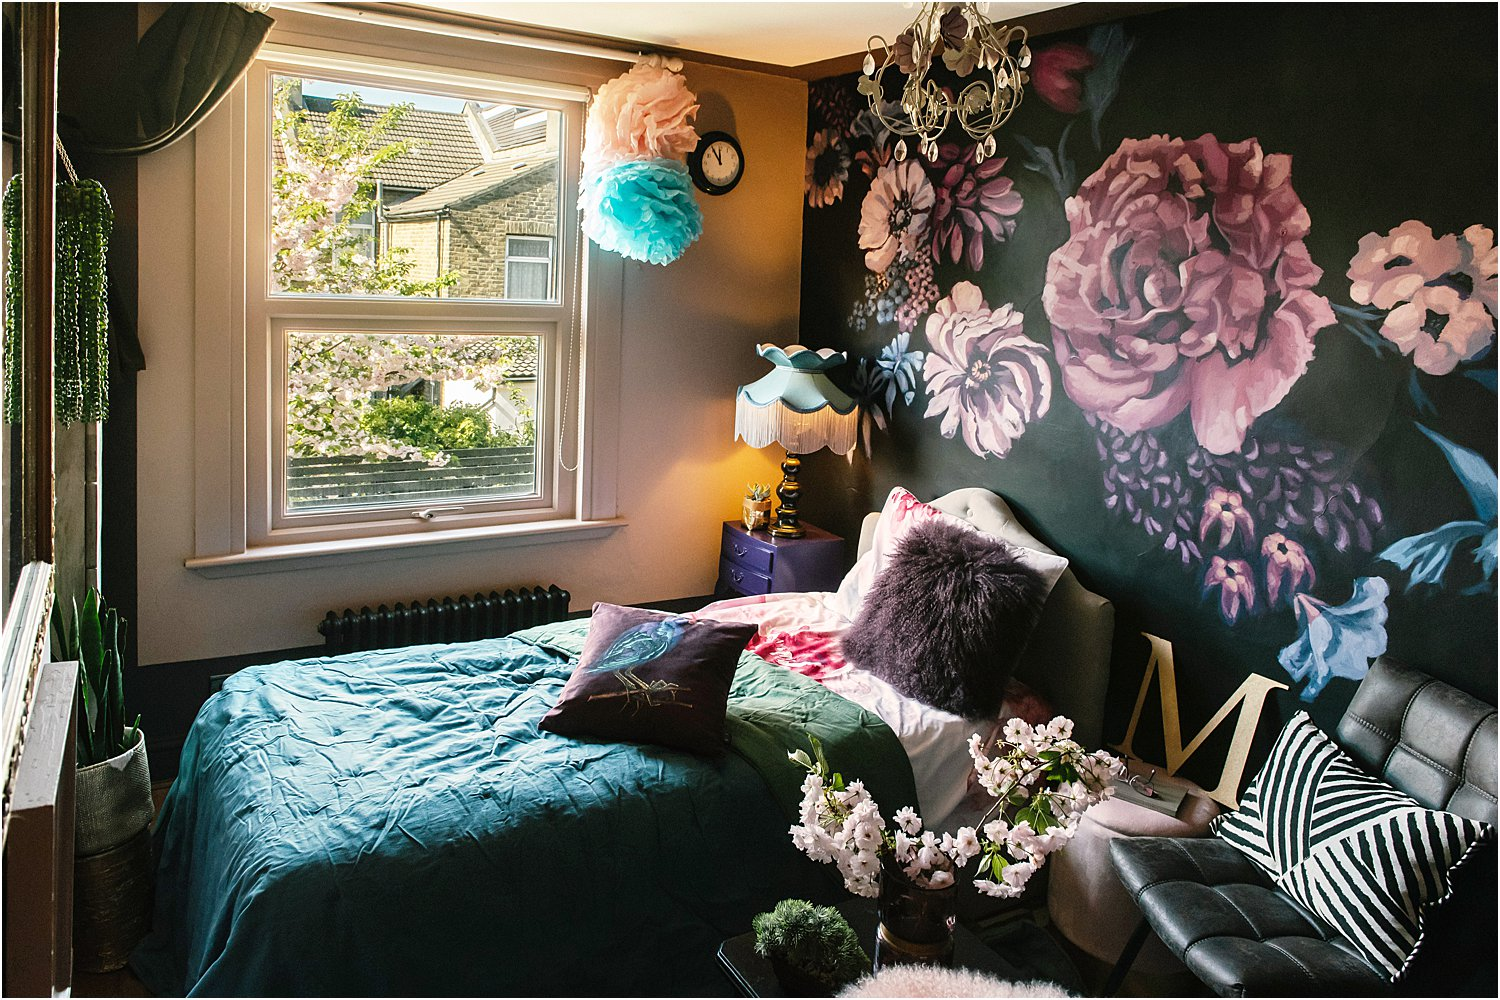 dark-floral-bedroom-eclectic-maximalist-hand-painted-mural-interior-design